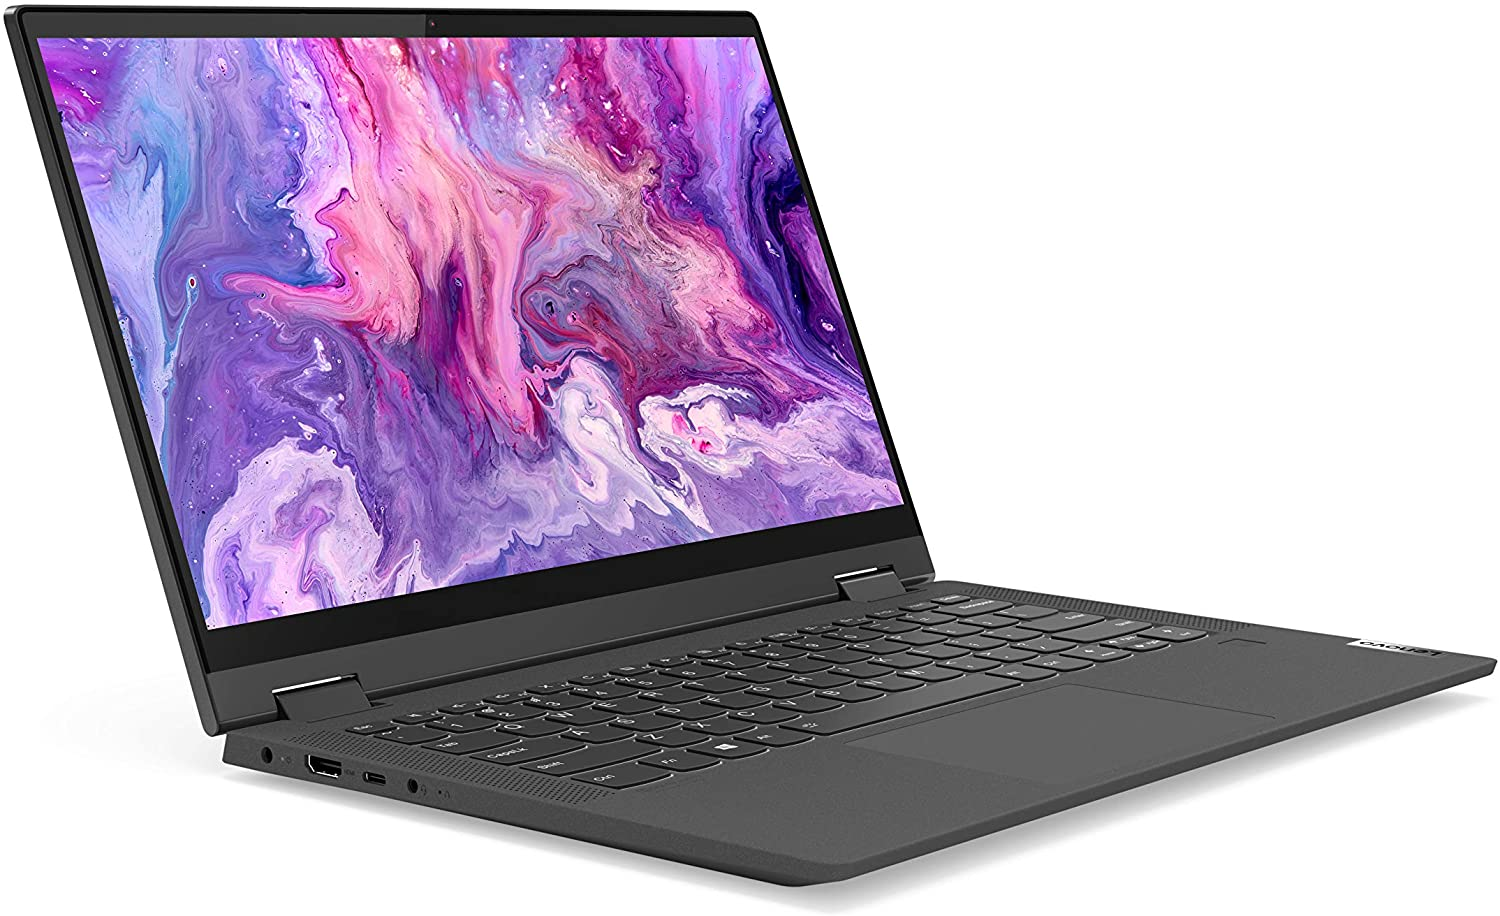 Lenovo Flex 5 14 inch 2-in-1 Laptop